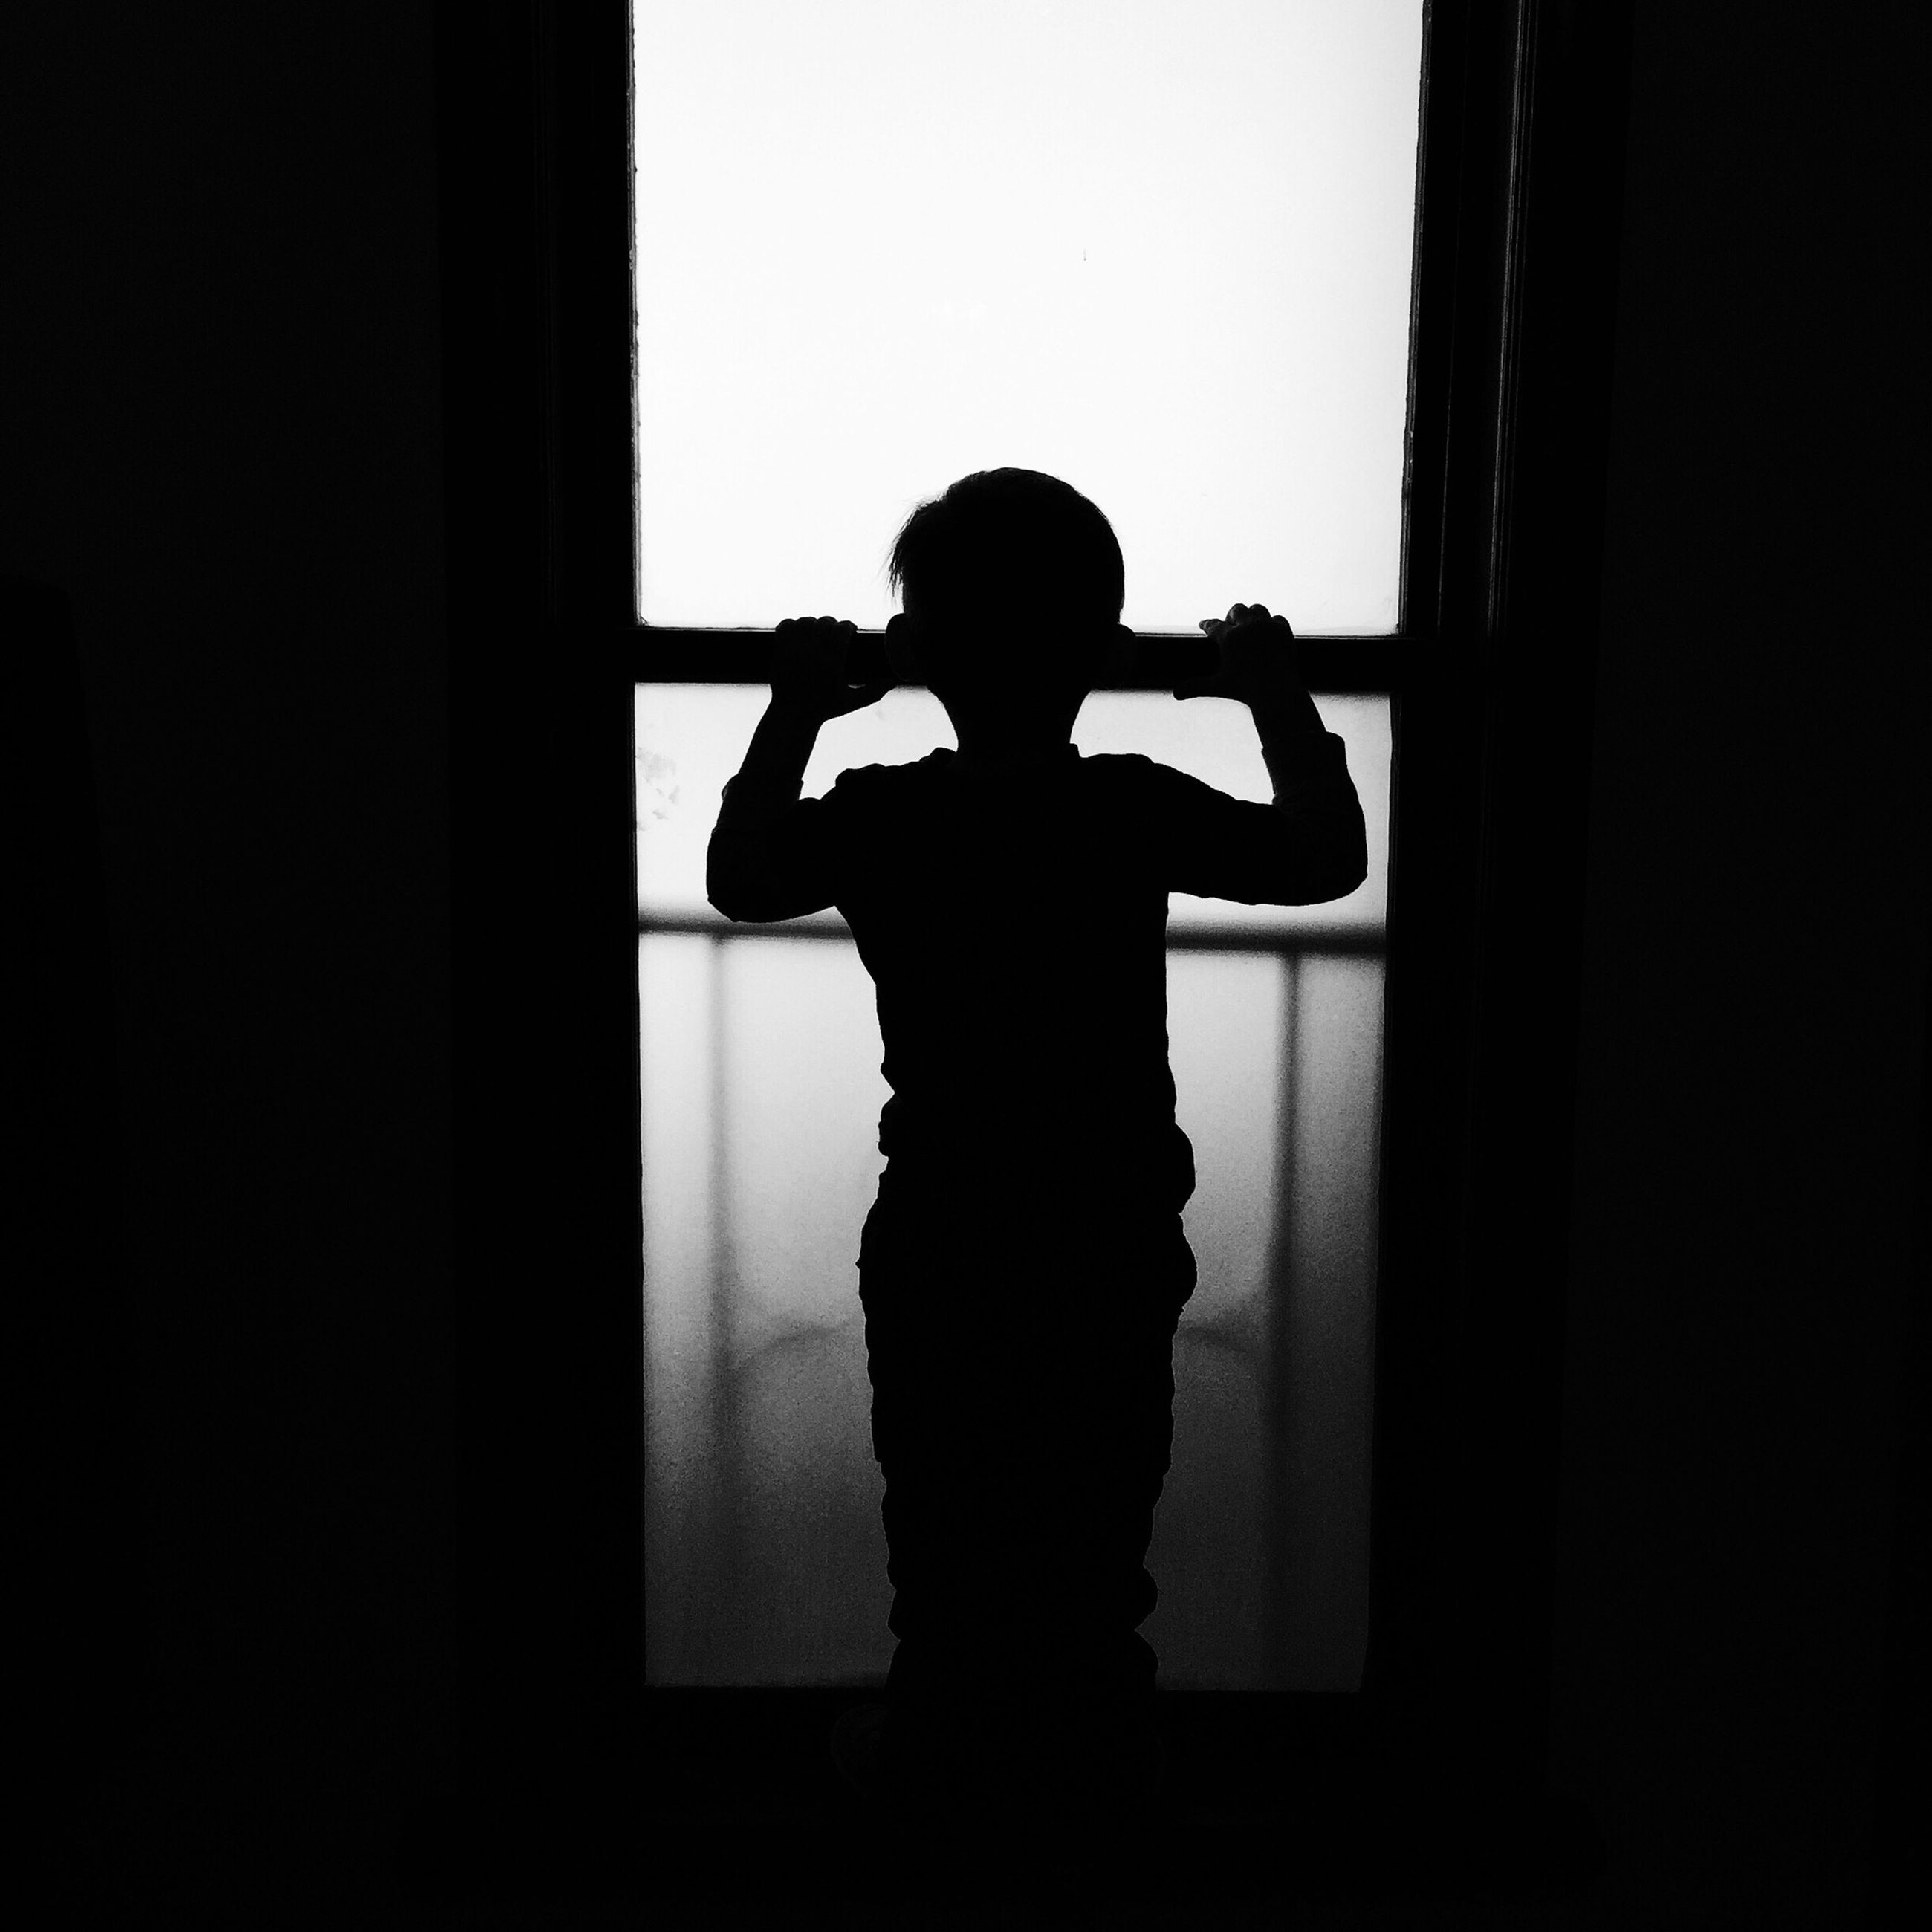 silhouette, indoors, lifestyles, full length, leisure activity, men, standing, copy space, window, dark, side view, three quarter length, rear view, togetherness, outline, person, home interior